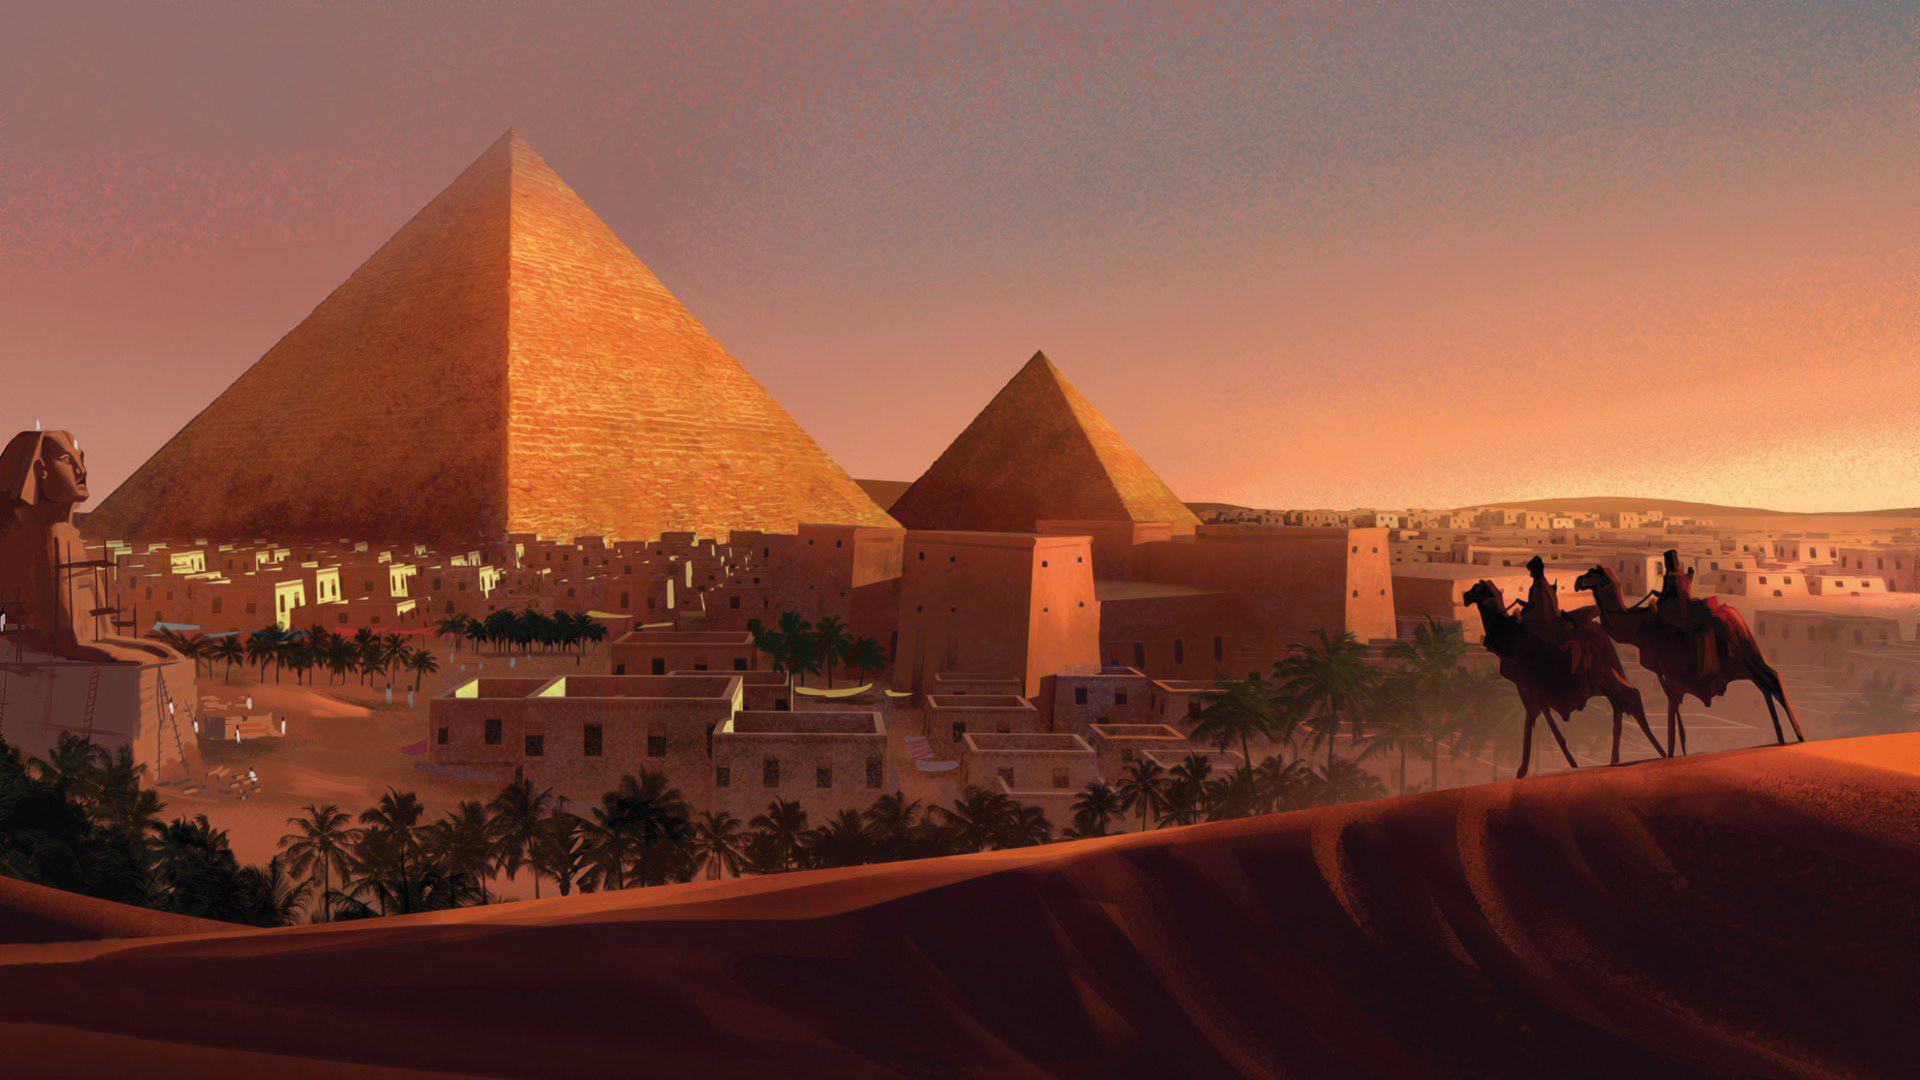 the historical construction of egypts great pyramids [in photos: inside egypt's great pyramids] giza pyramids the first, and largest, pyramid at giza was built by the pharaoh khufu (reign started around 2551 bc.